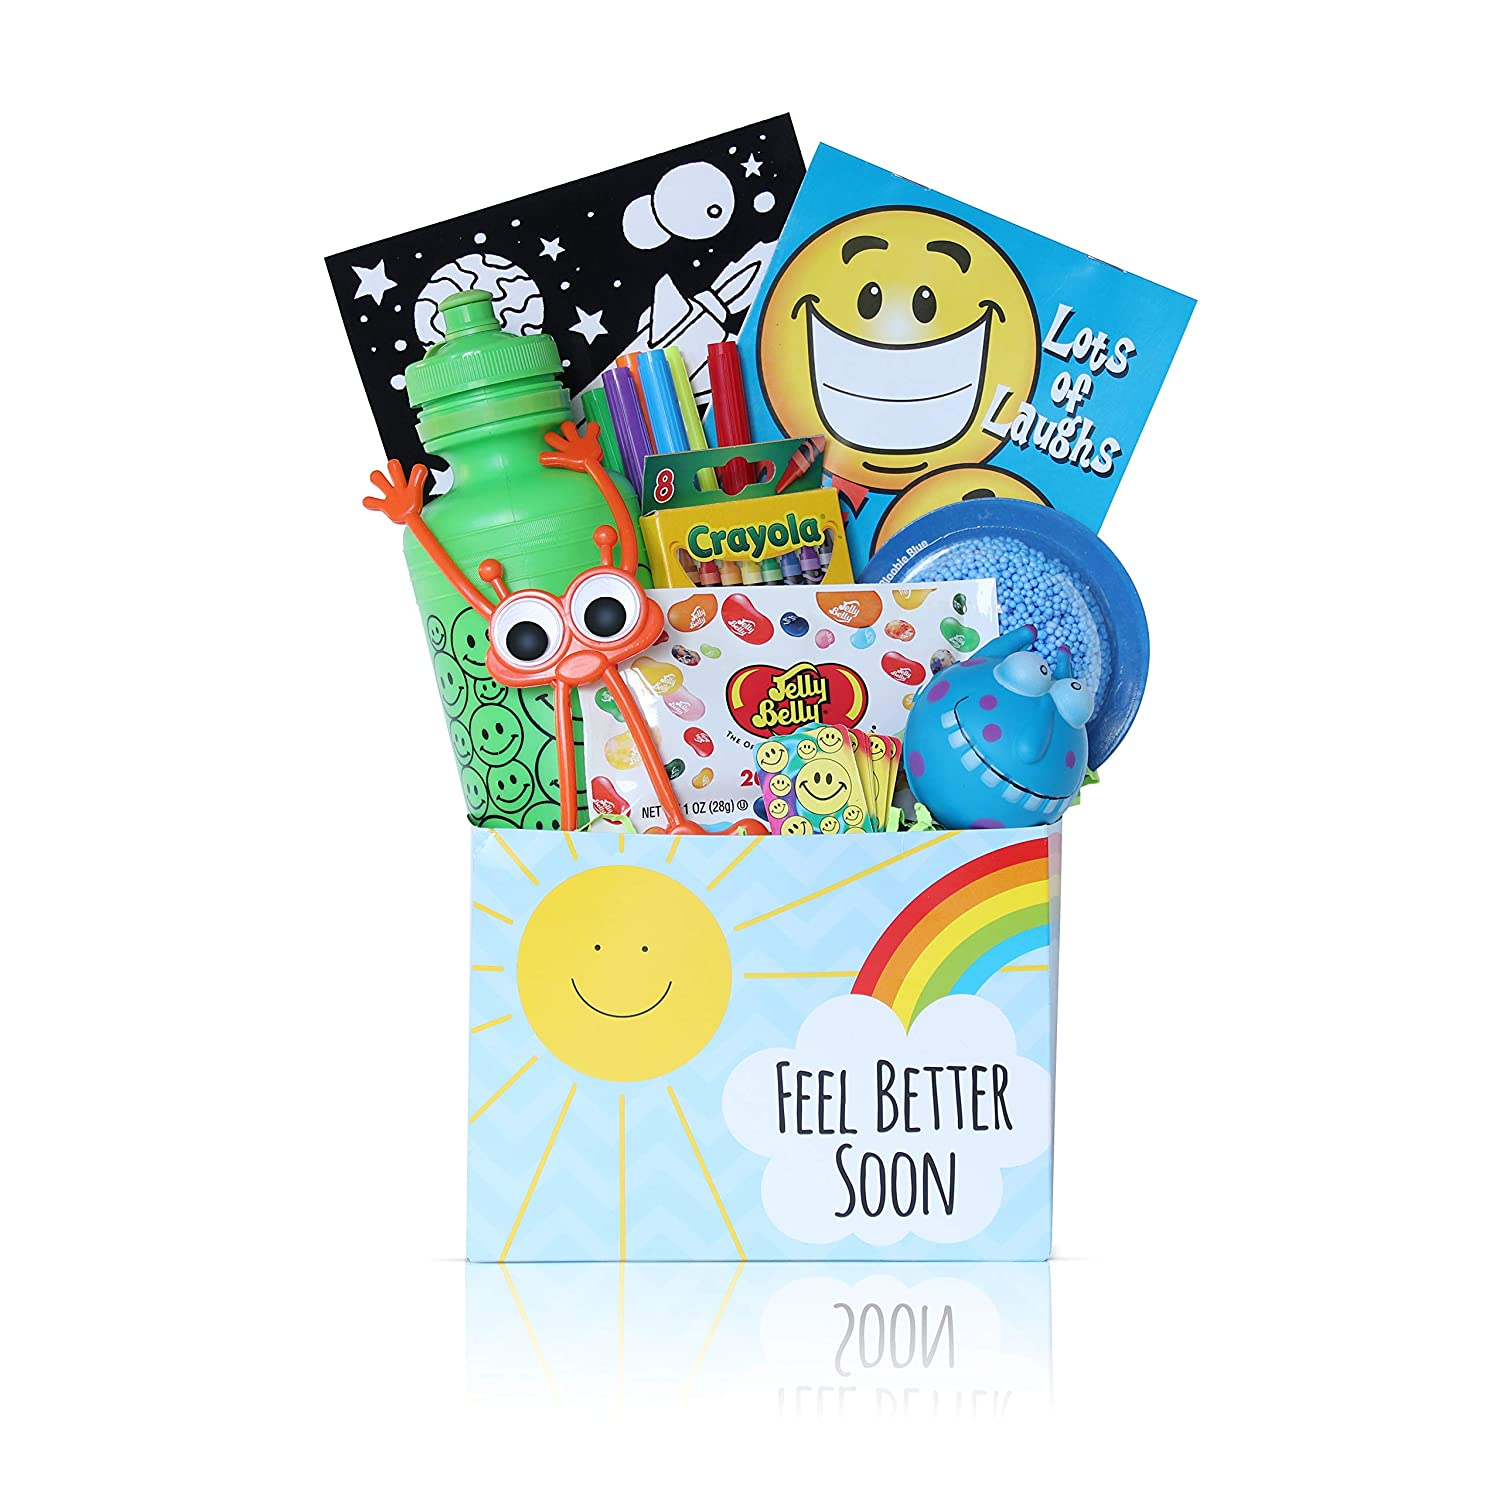 Get Well Gift Basket For Kids Care Package Get Well Soon Gifts With Fun Activities And Candy Just Right For Boys And Girls Who Are Sick Or Recovering Colors